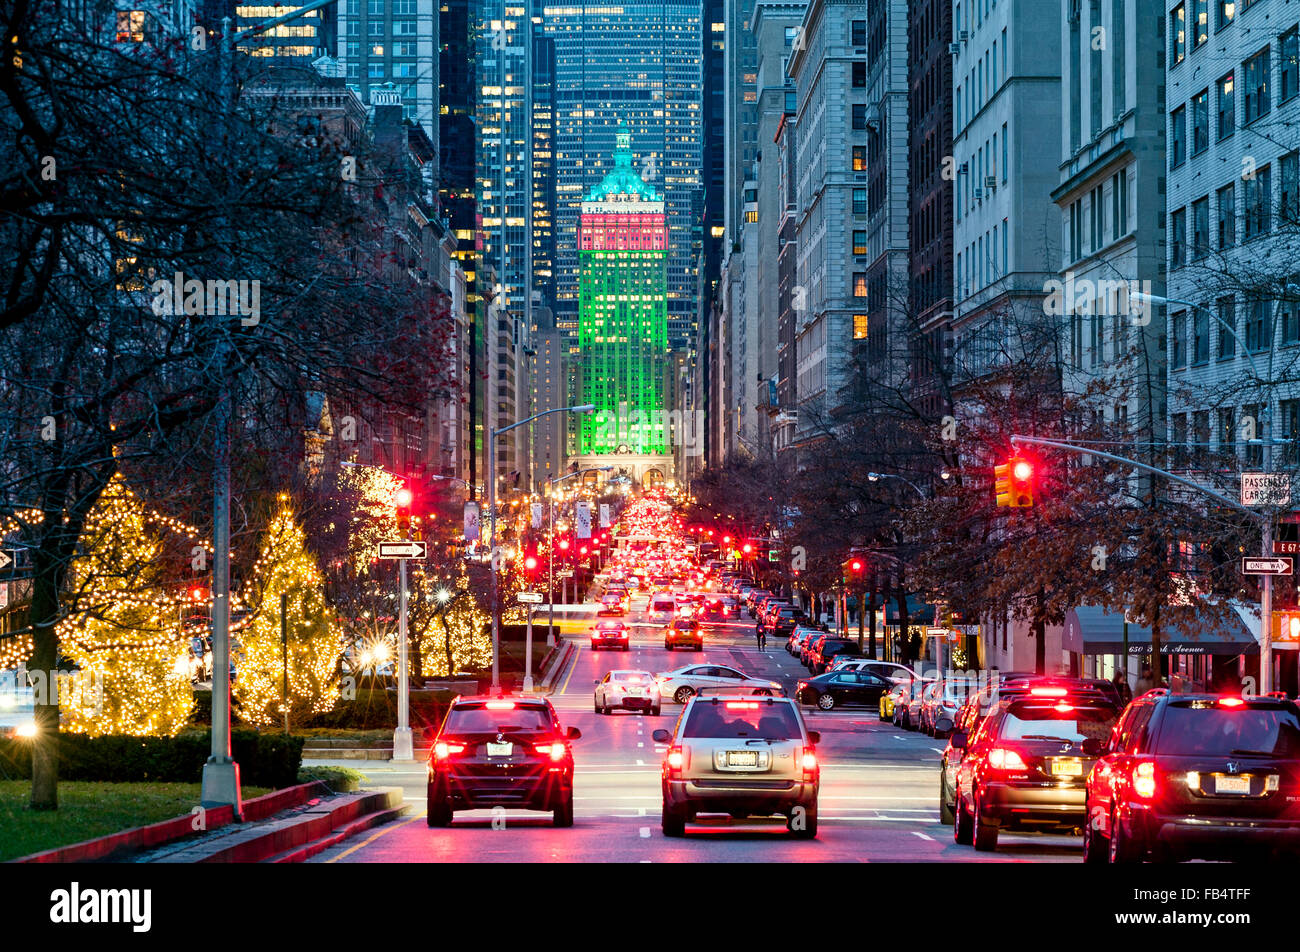 new york streets park avenue new york city christmas decorations stock photo royalty free image. Black Bedroom Furniture Sets. Home Design Ideas